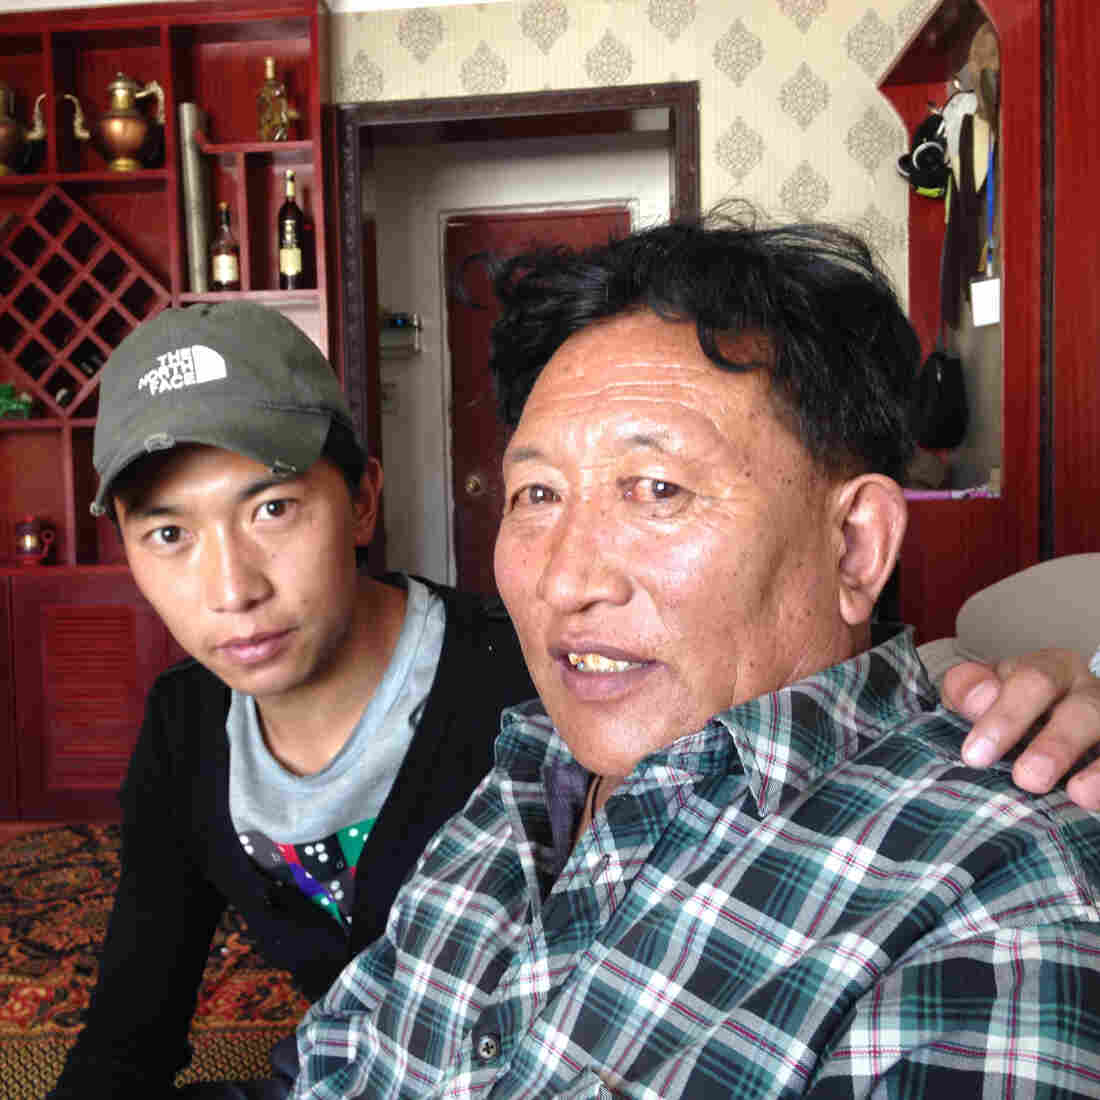 China's Nomads Have A Foot In Two Very Different Worlds